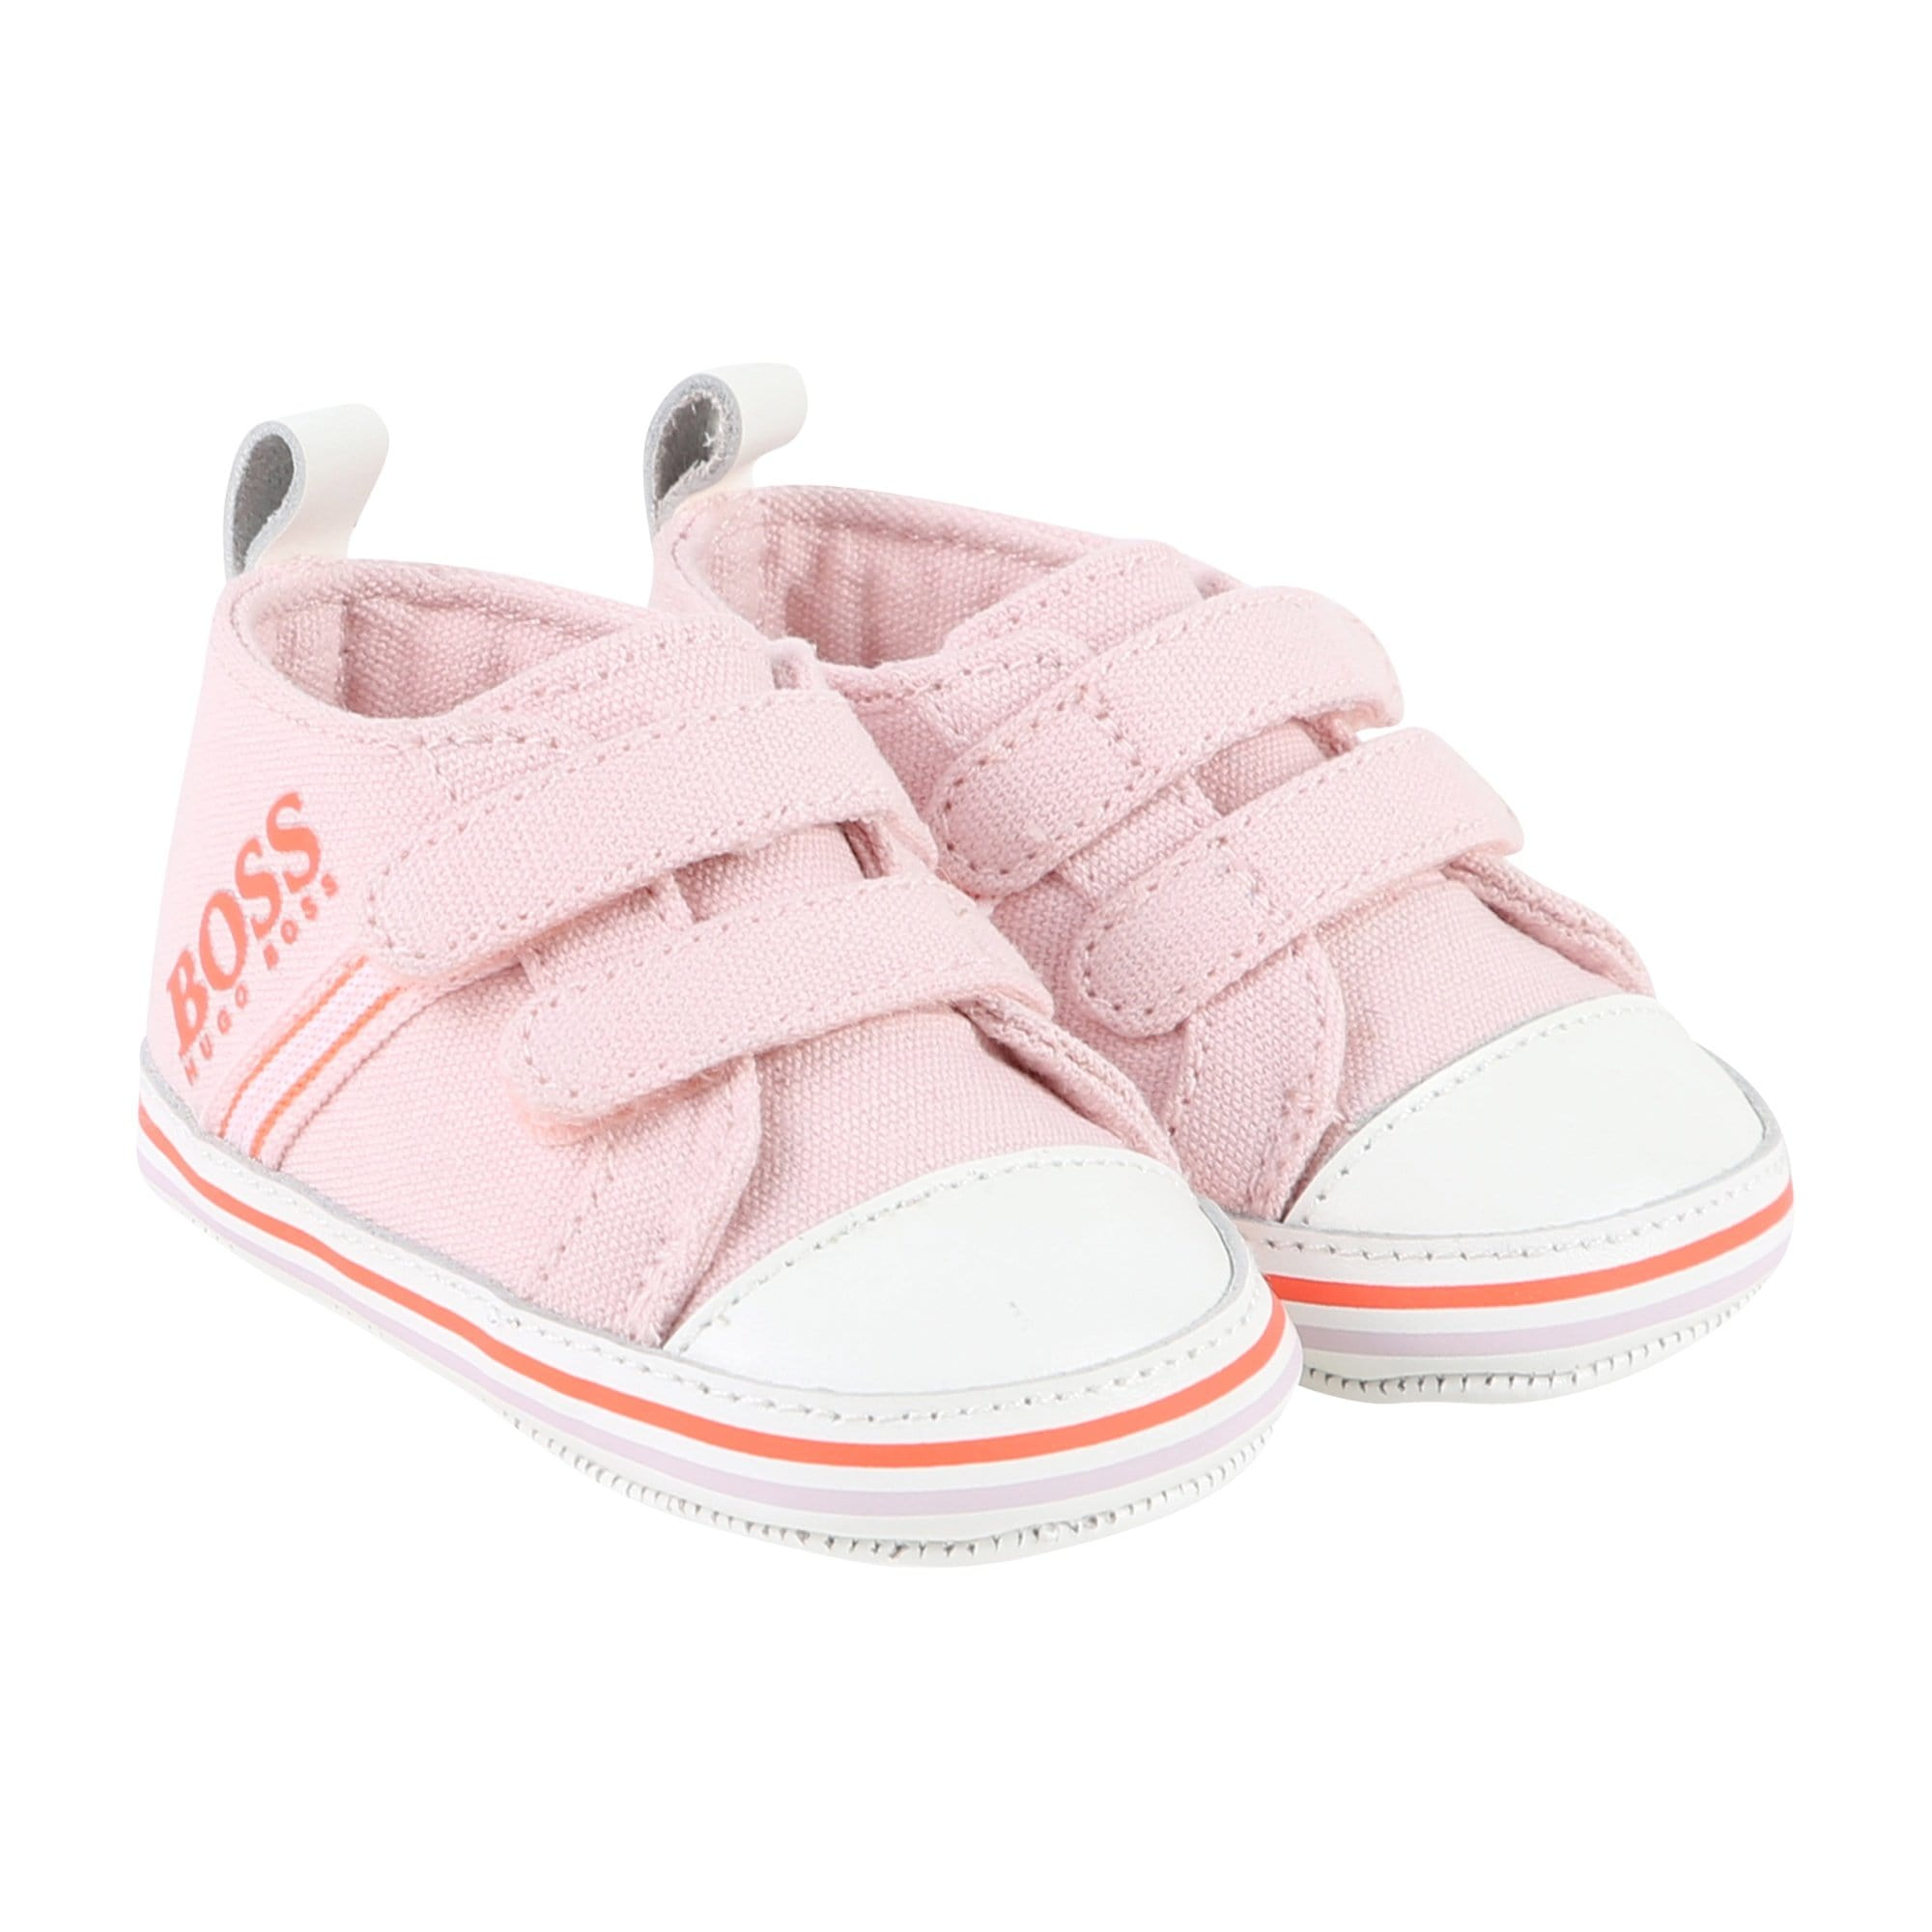 Hugo Boss Canvas High Tops Pink J99056/44L